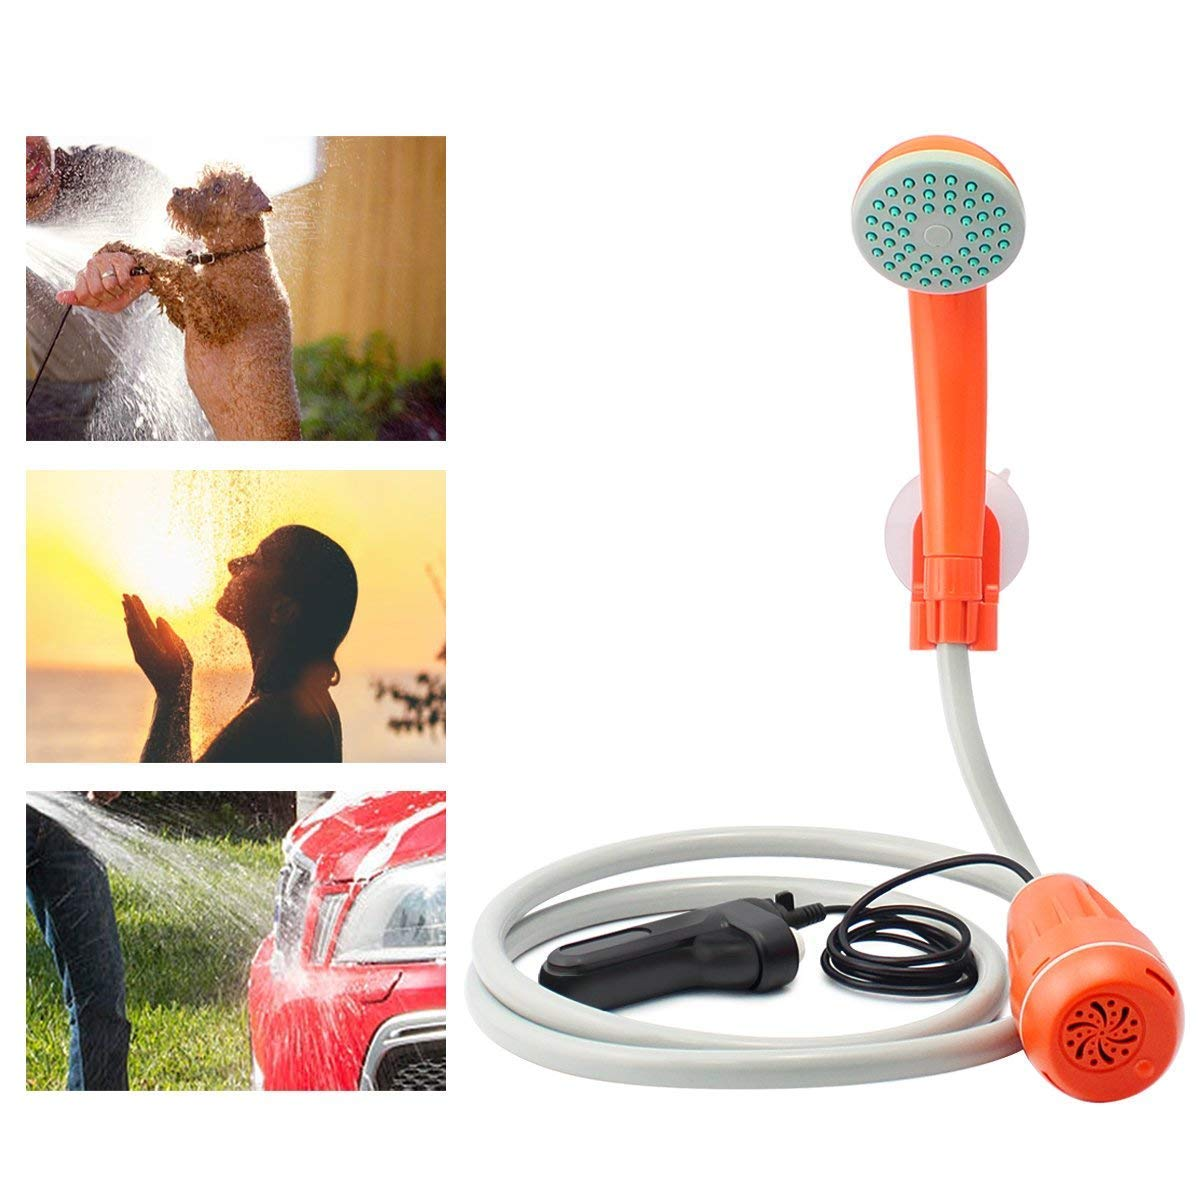 Bearham Portable Outdoor Camping Shower, Rechargeable Battery Powered Shower, Handheld Electric Shower for Outdoor, Camping, Traveling Hiking, Car Washing, Plants Watering, Pet Cleaning